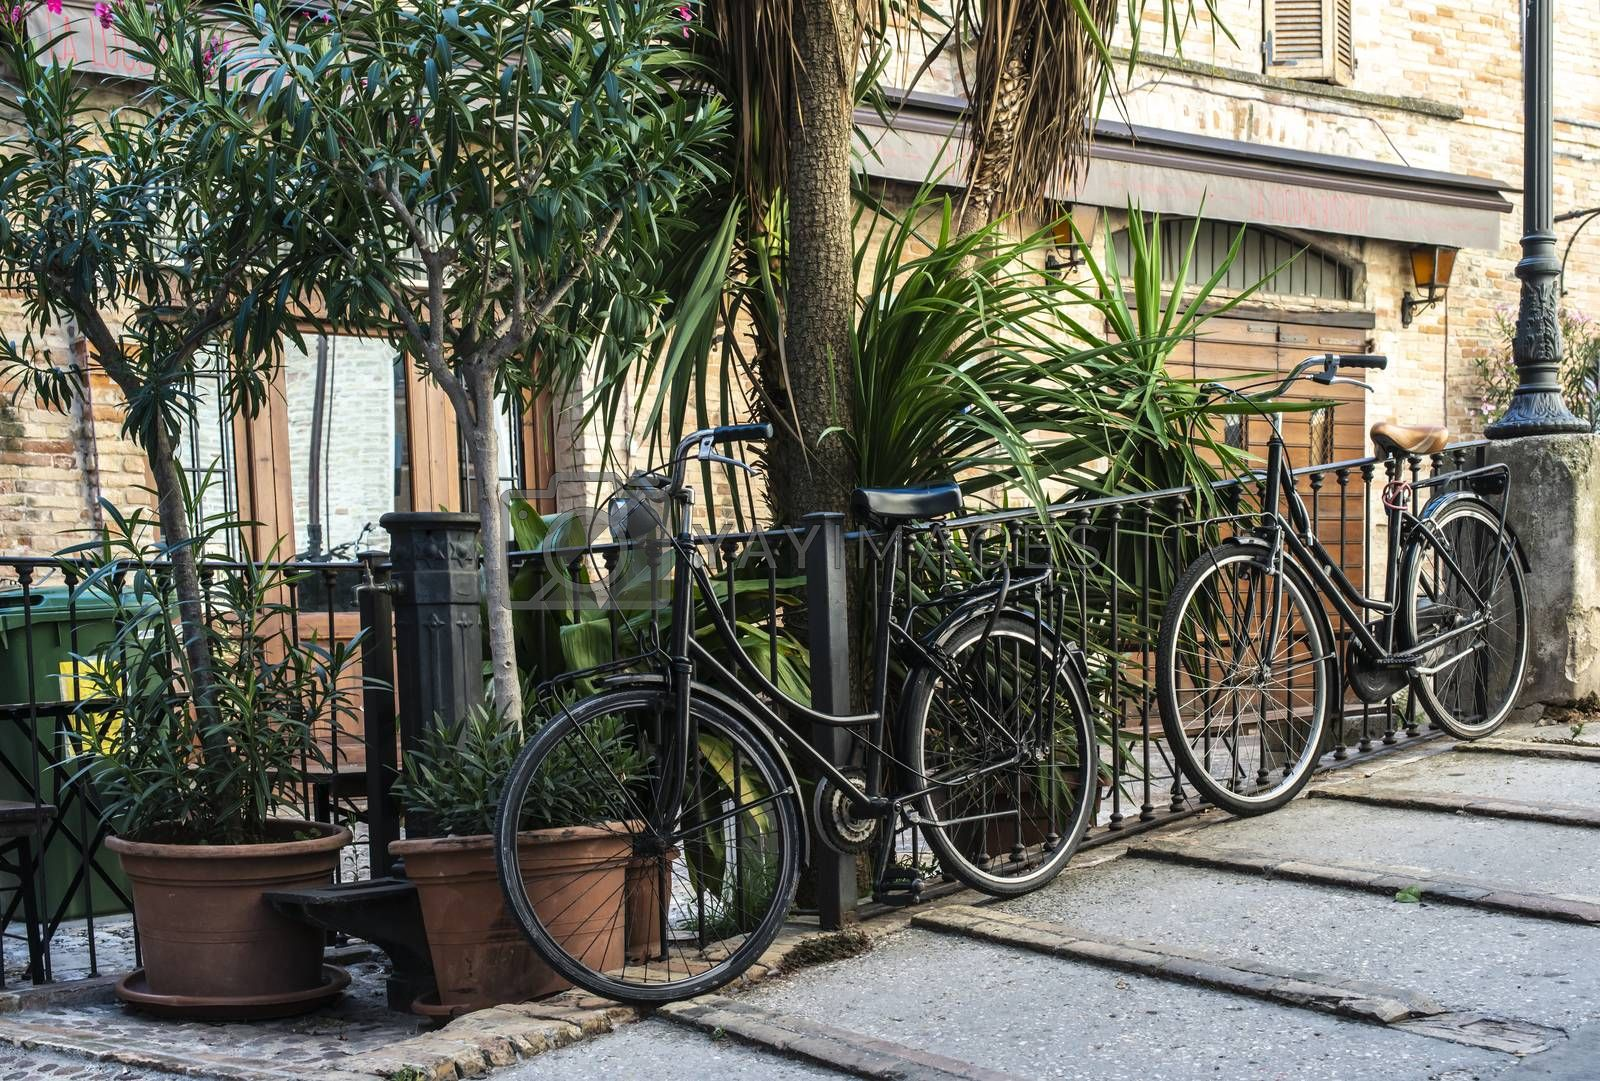 Bicycles on typical italian street. Many vintage bikes and flowers in Italy. Various colours bicycles on a small paved street. Pots with green decorative flowers. Concept for italian spirit.